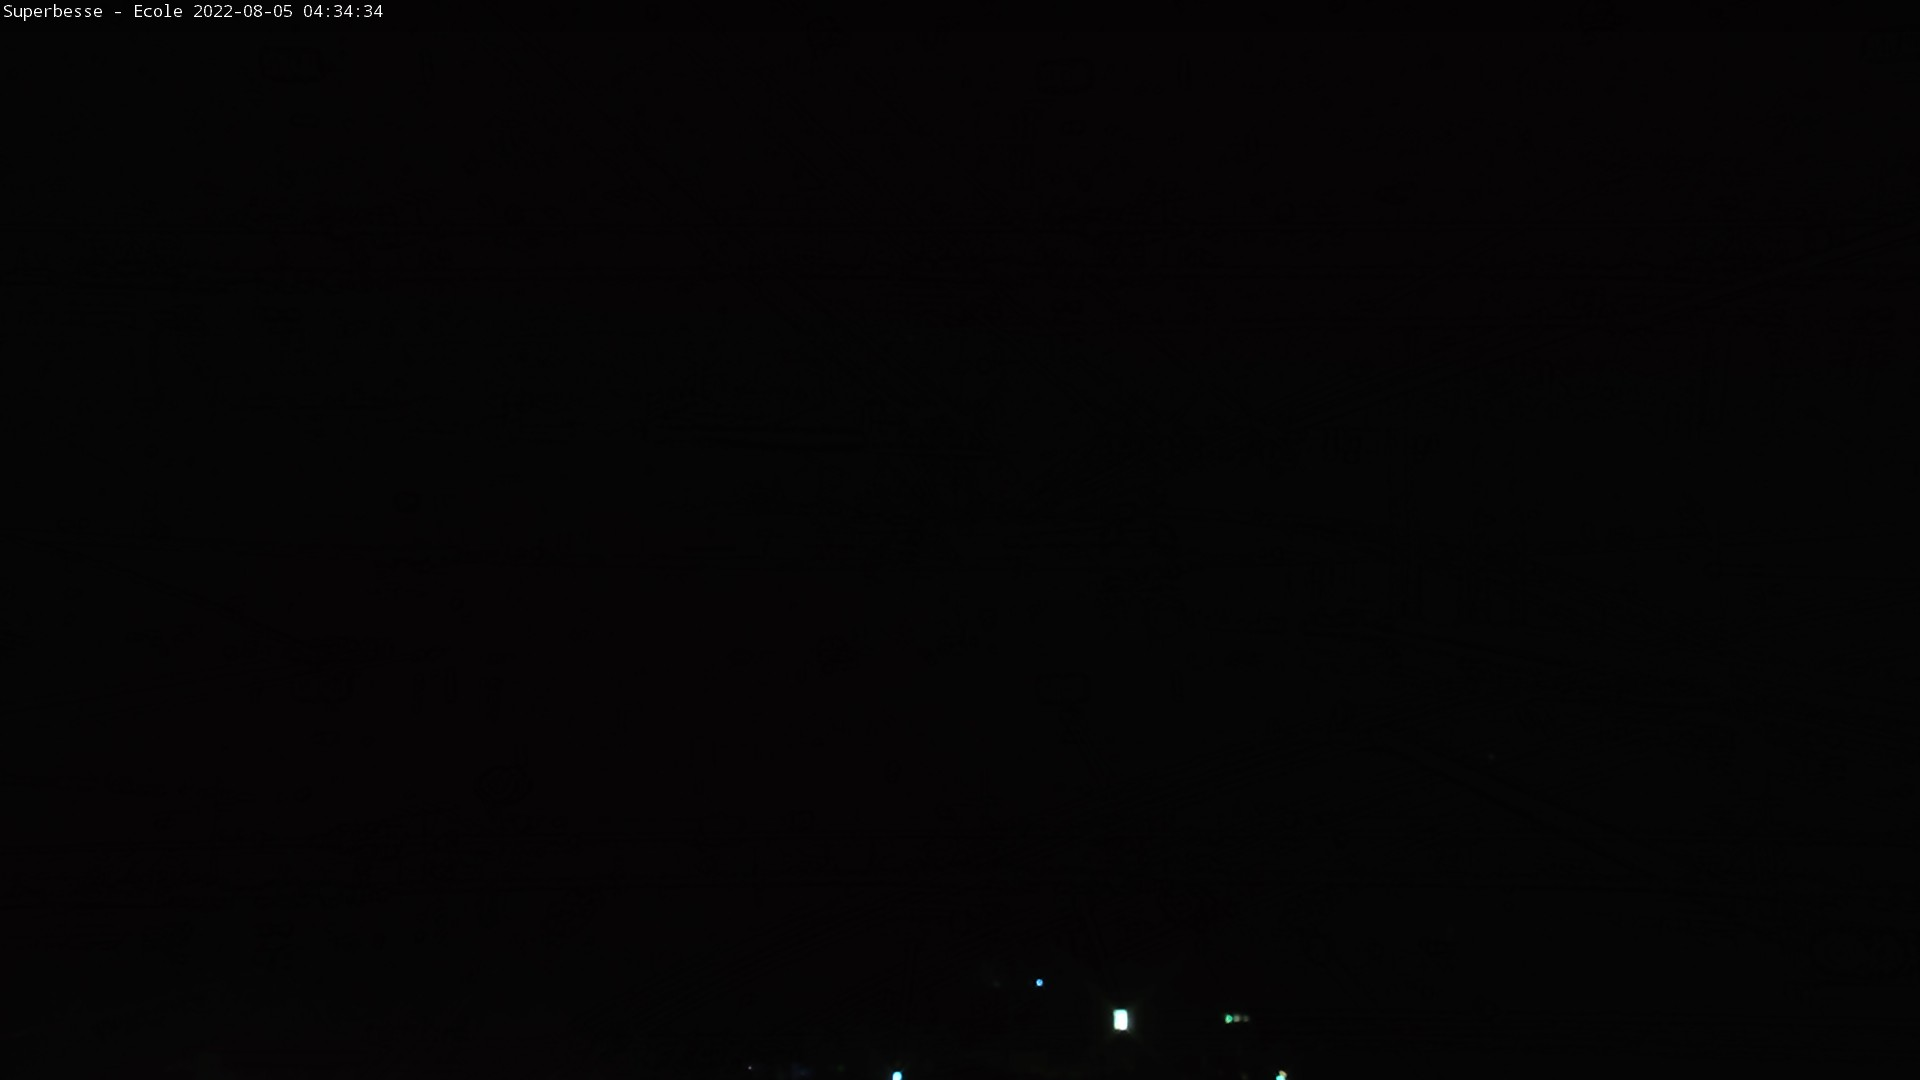 webcam Besse - Super Besse